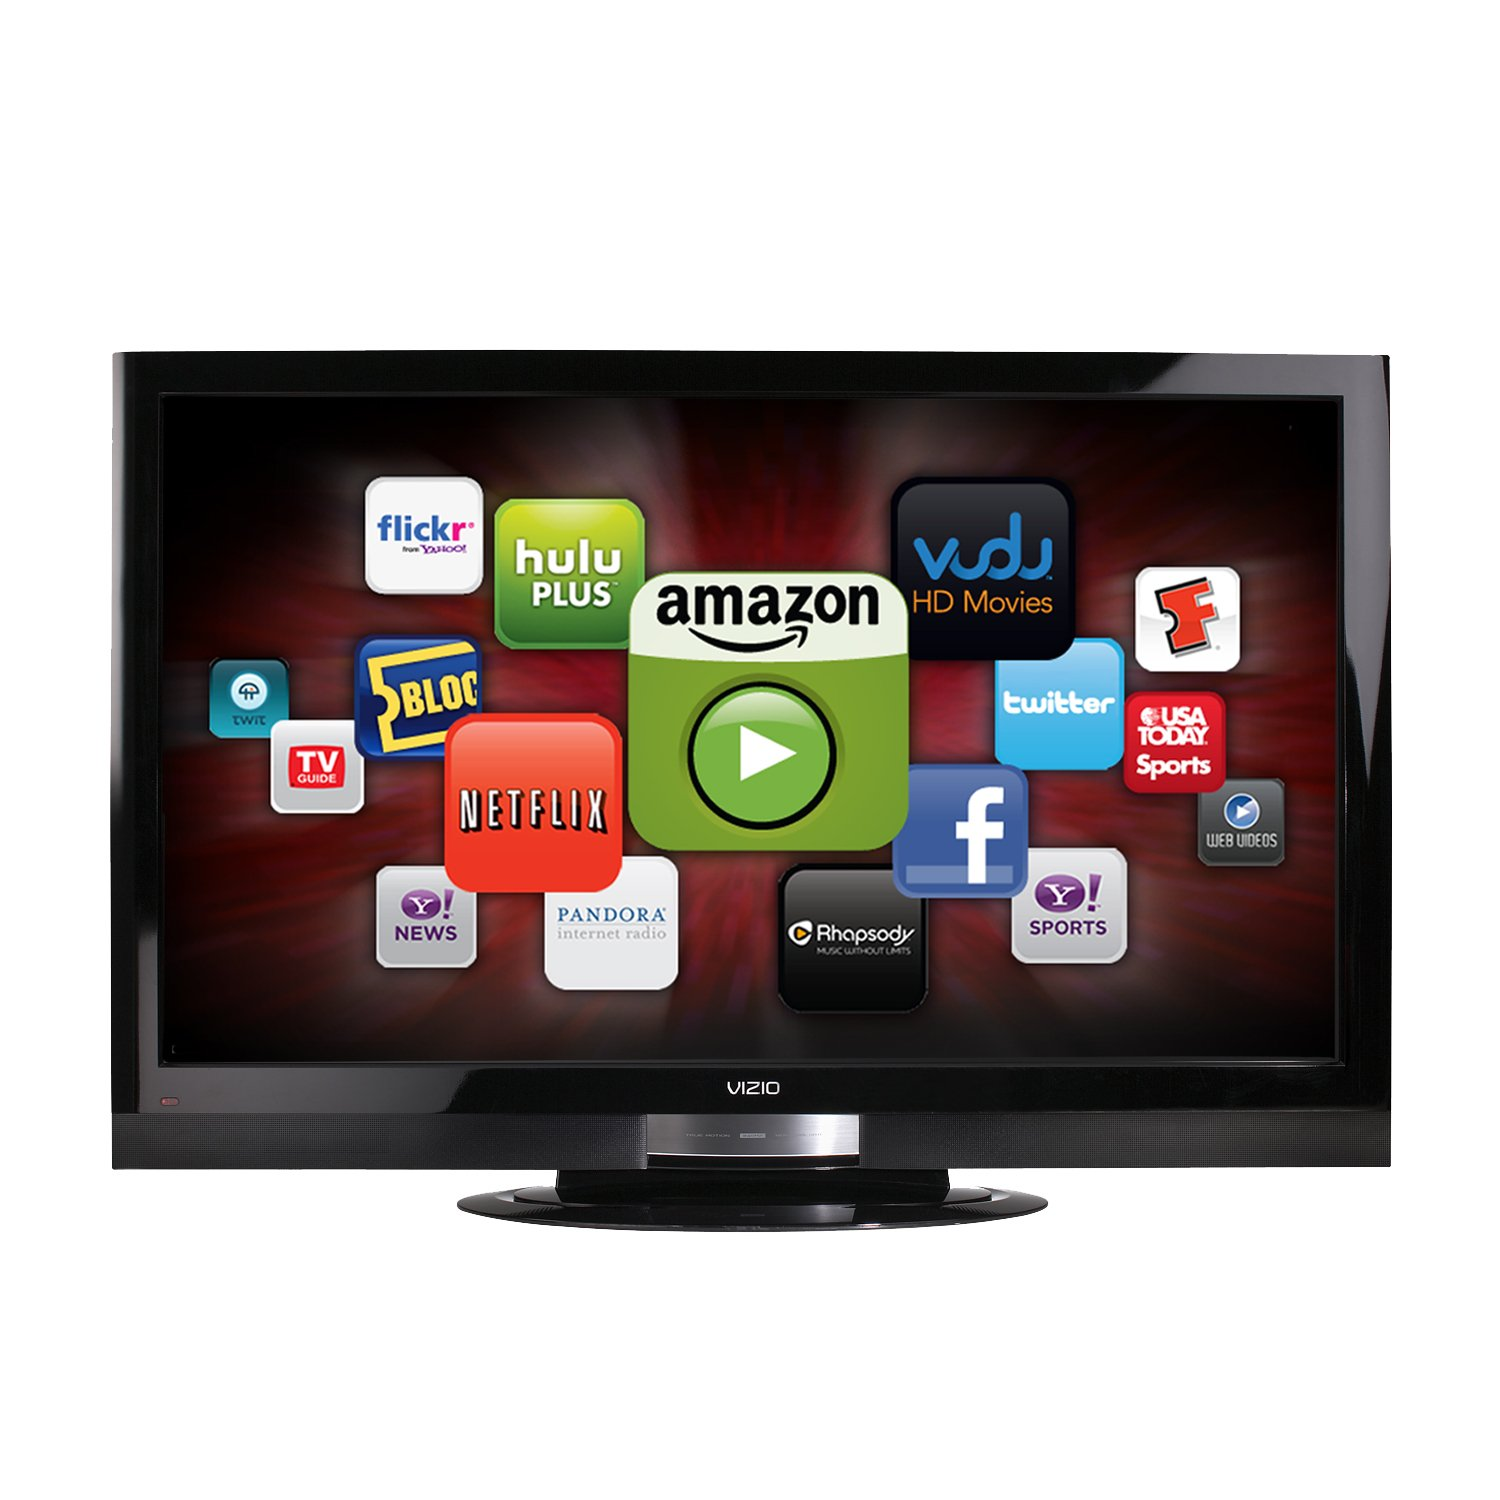 71dcafExxvL._SL1500_ amazon com vizio xvt323sv 32 inch full hd 1080p led lcd hdtv with vizio tv wiring diagram at n-0.co